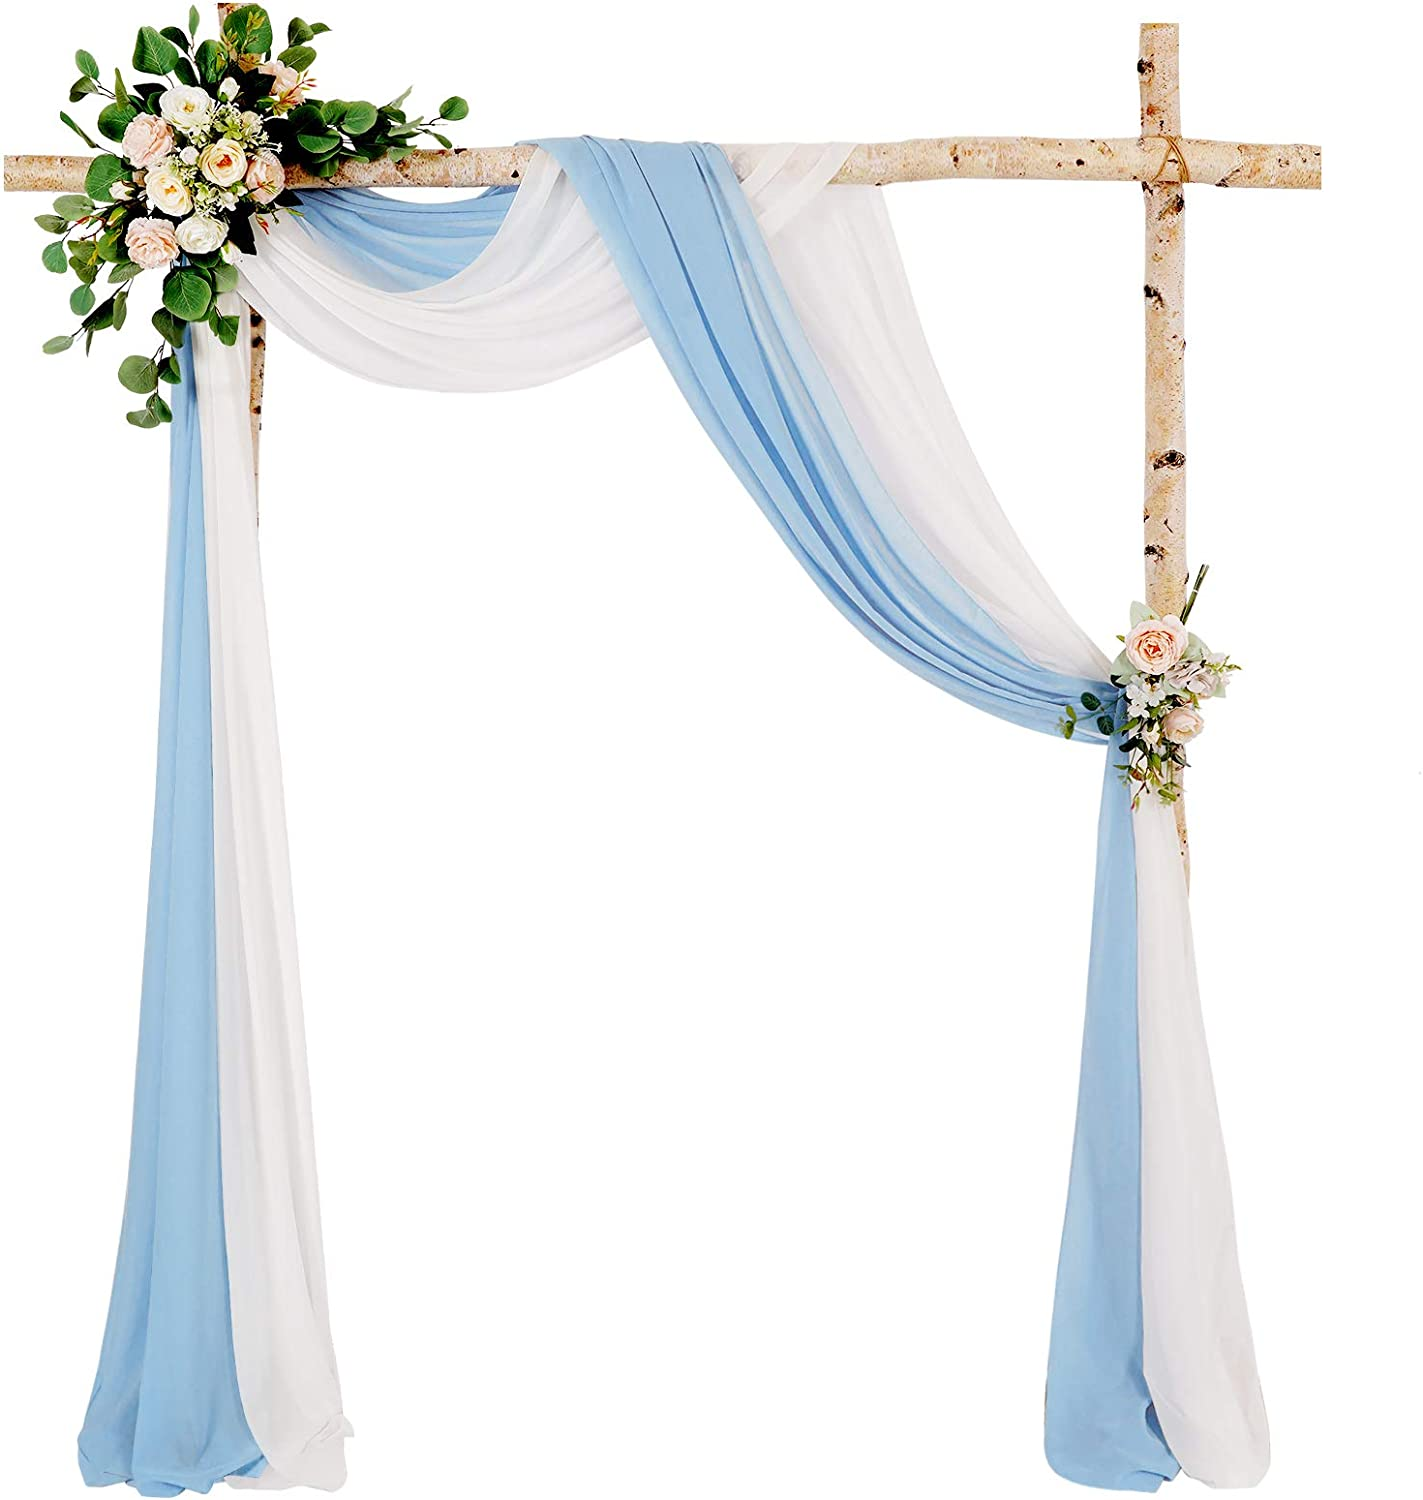 Chiffon Arch Draping Panels 2 Packs 6 Yards White and Baby Blue Wedding Drapery Fabric for Reception Stage Baby Shower Swag Decor